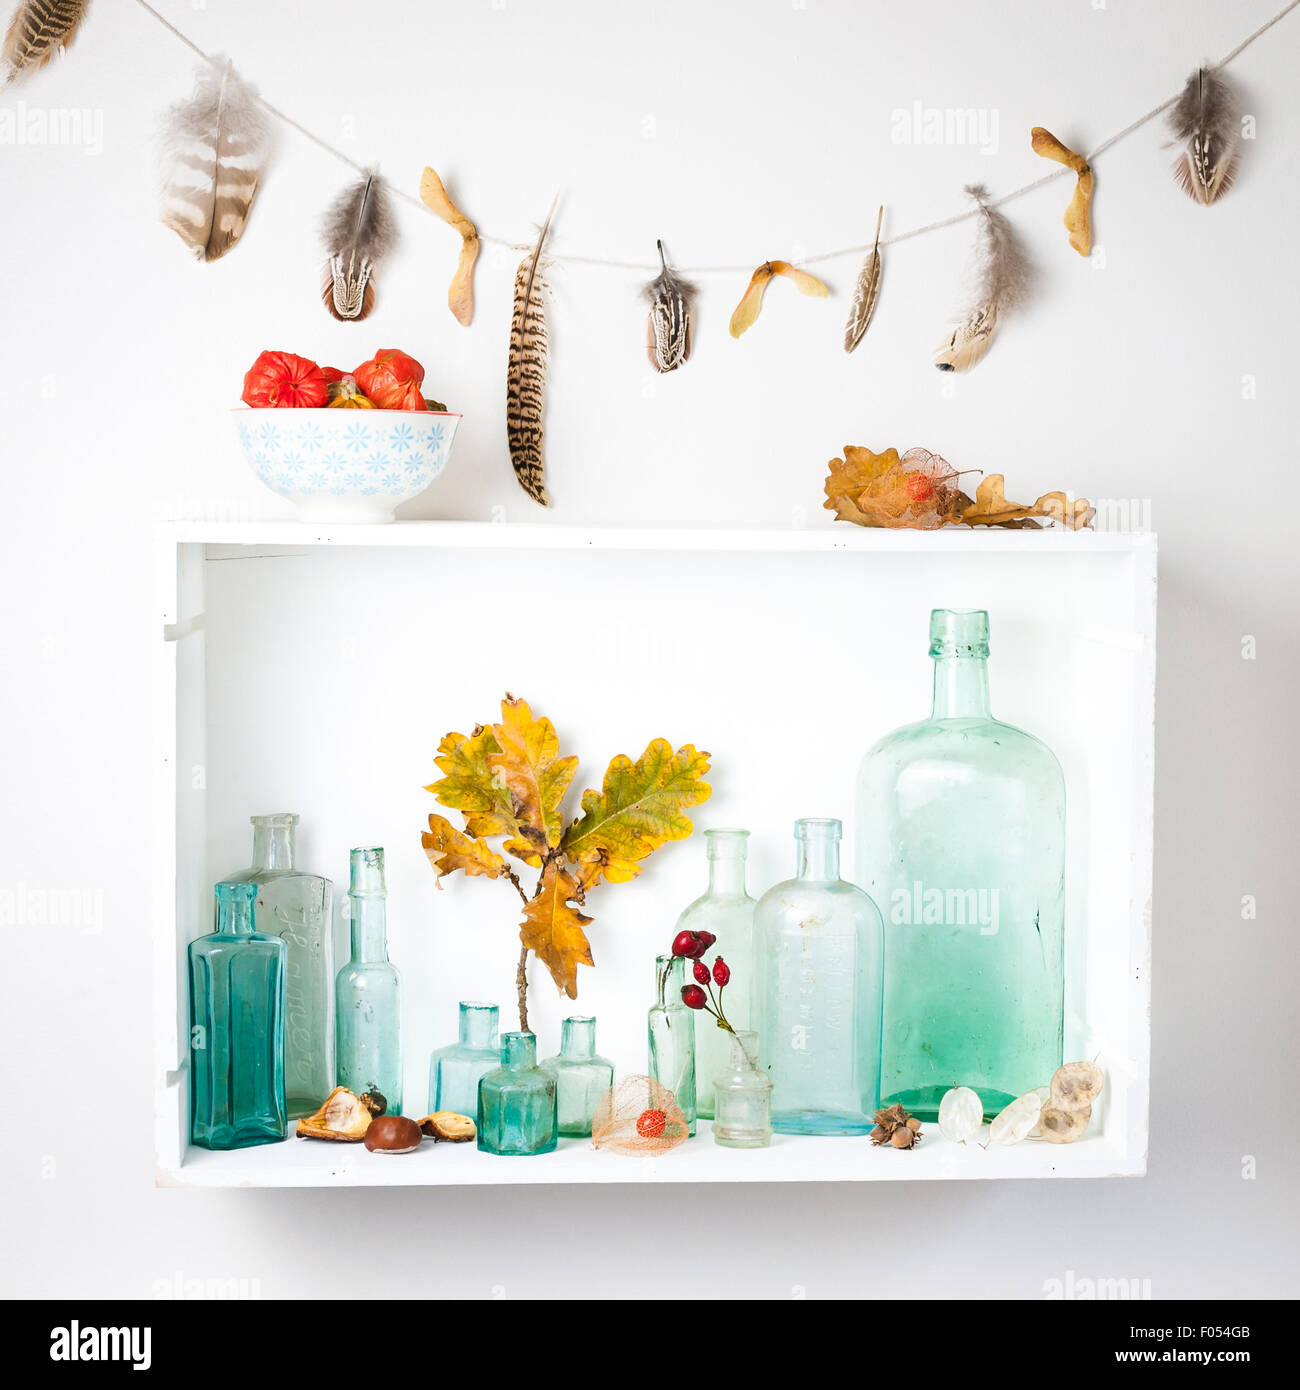 a shelf with a collection of vintage glass bottles  and autumn gatherings, and feather garland - Stock Image